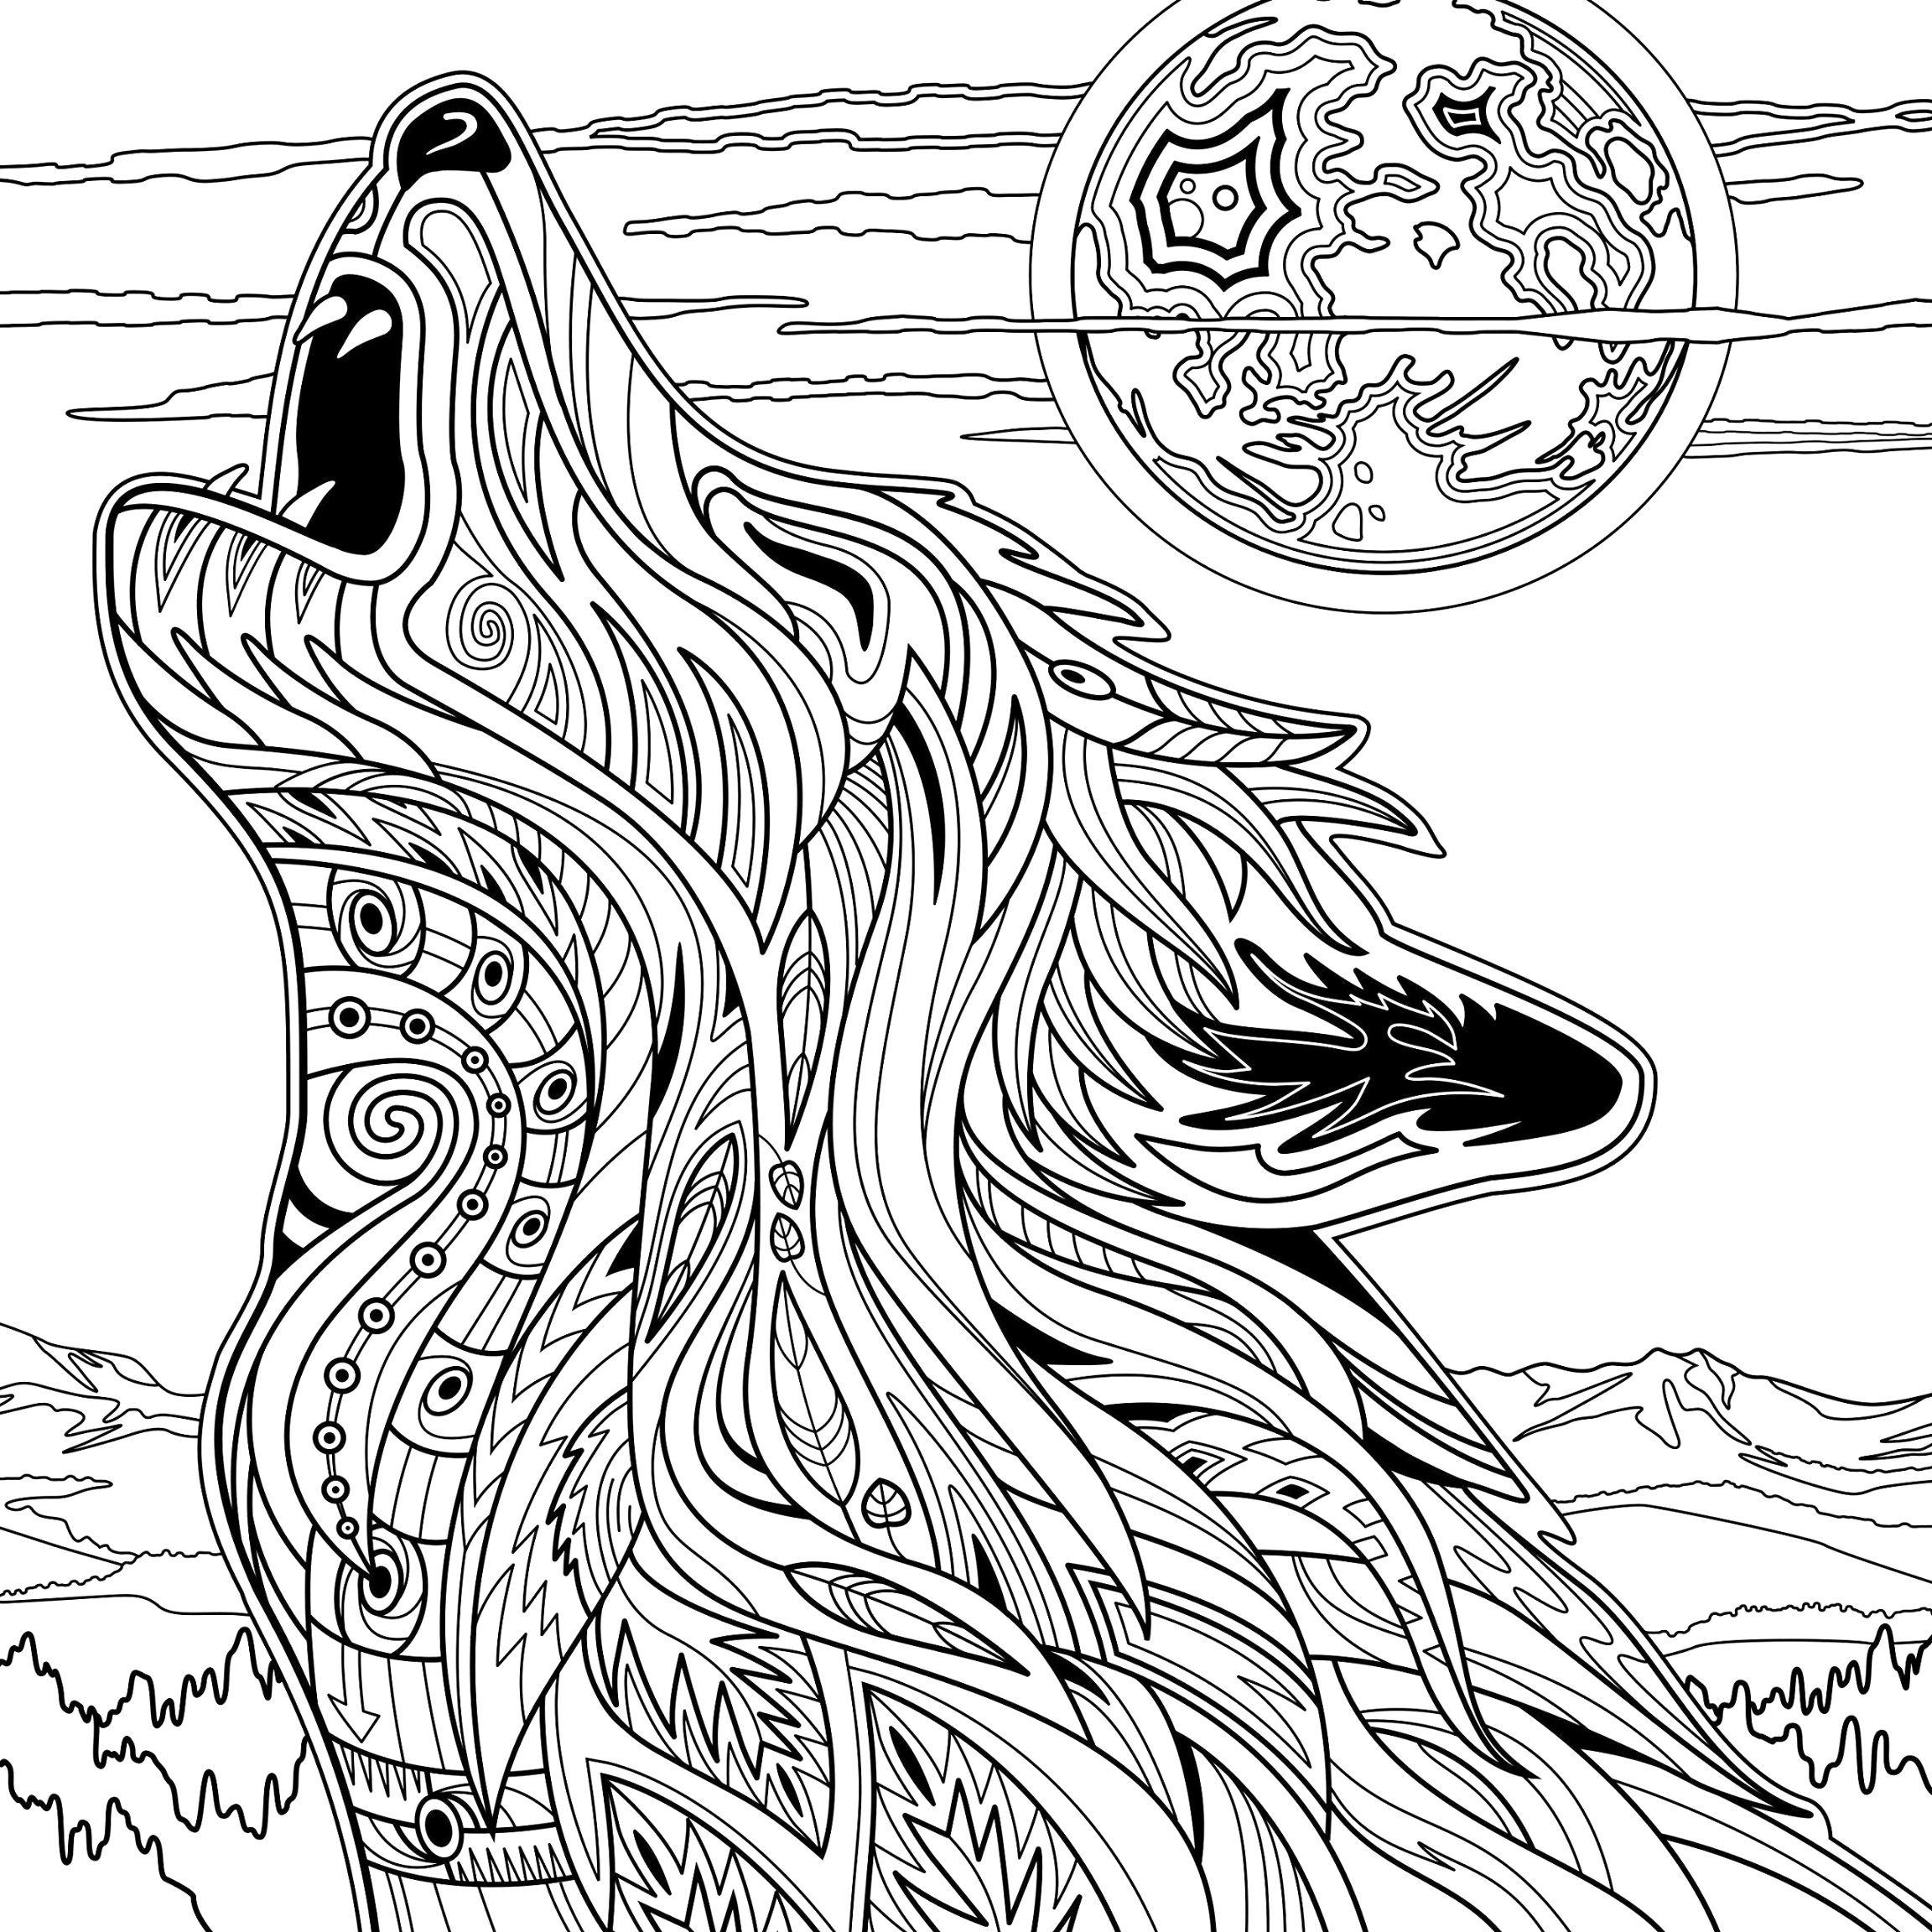 Simply download wolf coloring pages to color up